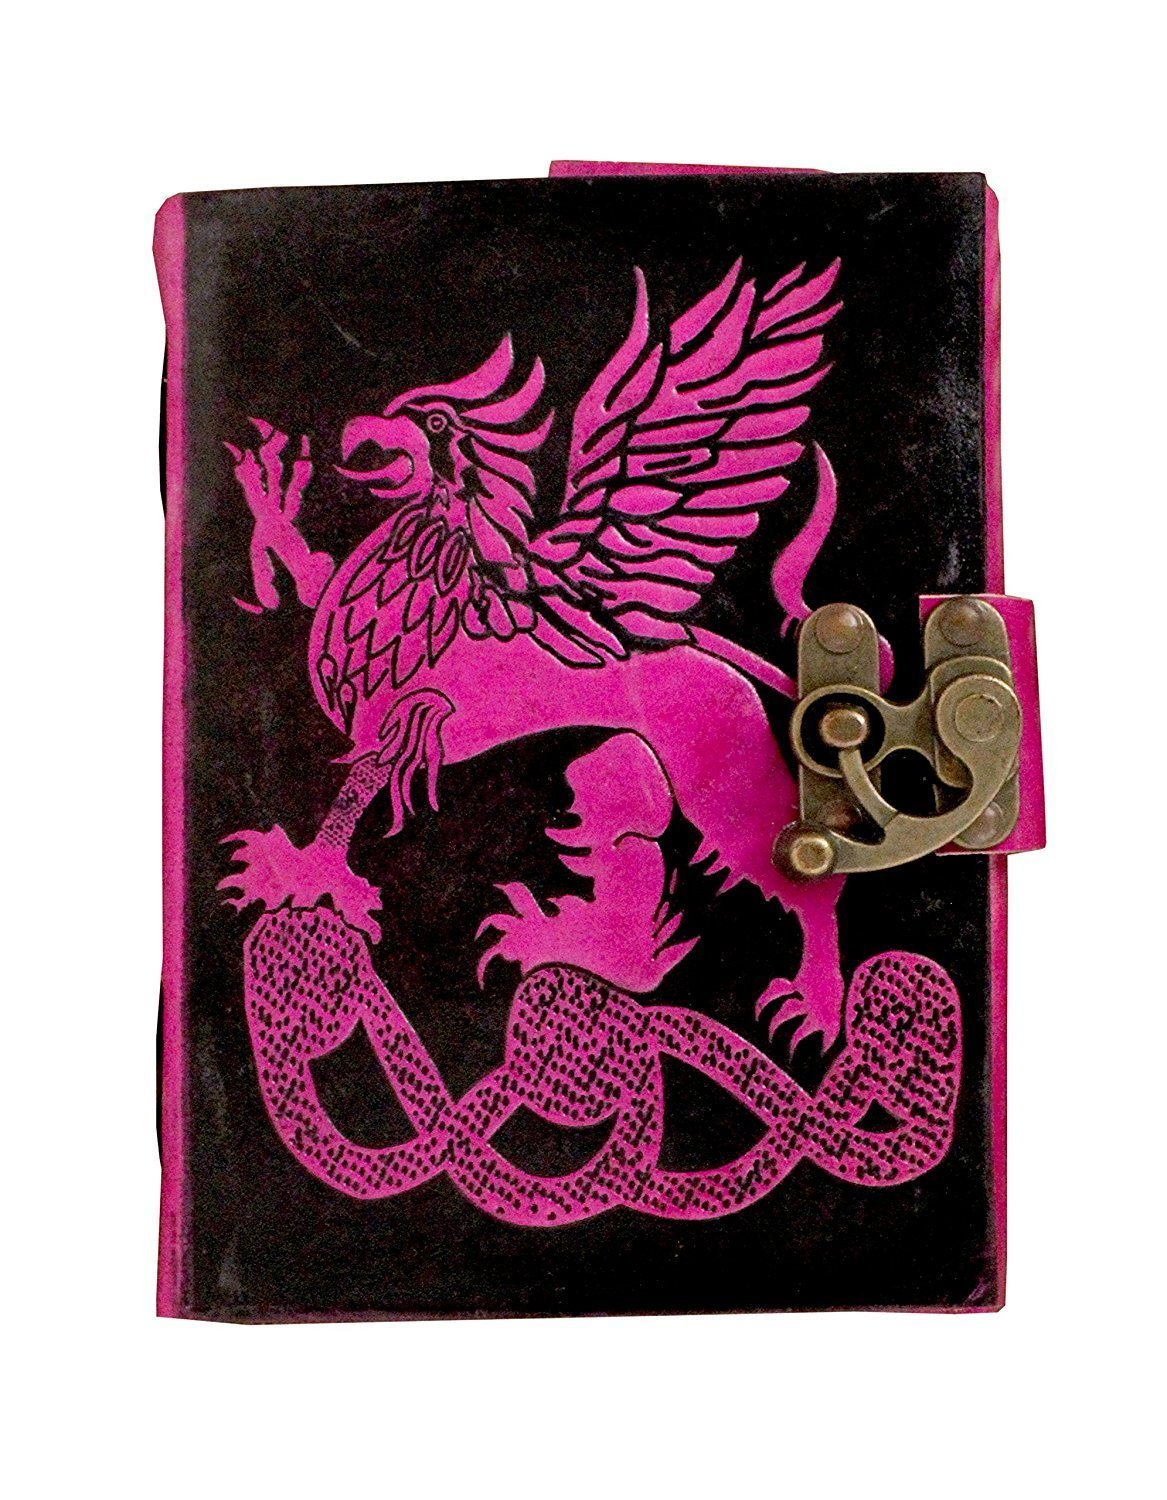 TUZECH Pure Genuine Real Vintage Hunter Leather Handmade paper Notebook Diary For office Home to Write Poem Daily Update With attractive Metal Lock and Engraved Dragon 7 Inches (Pink)